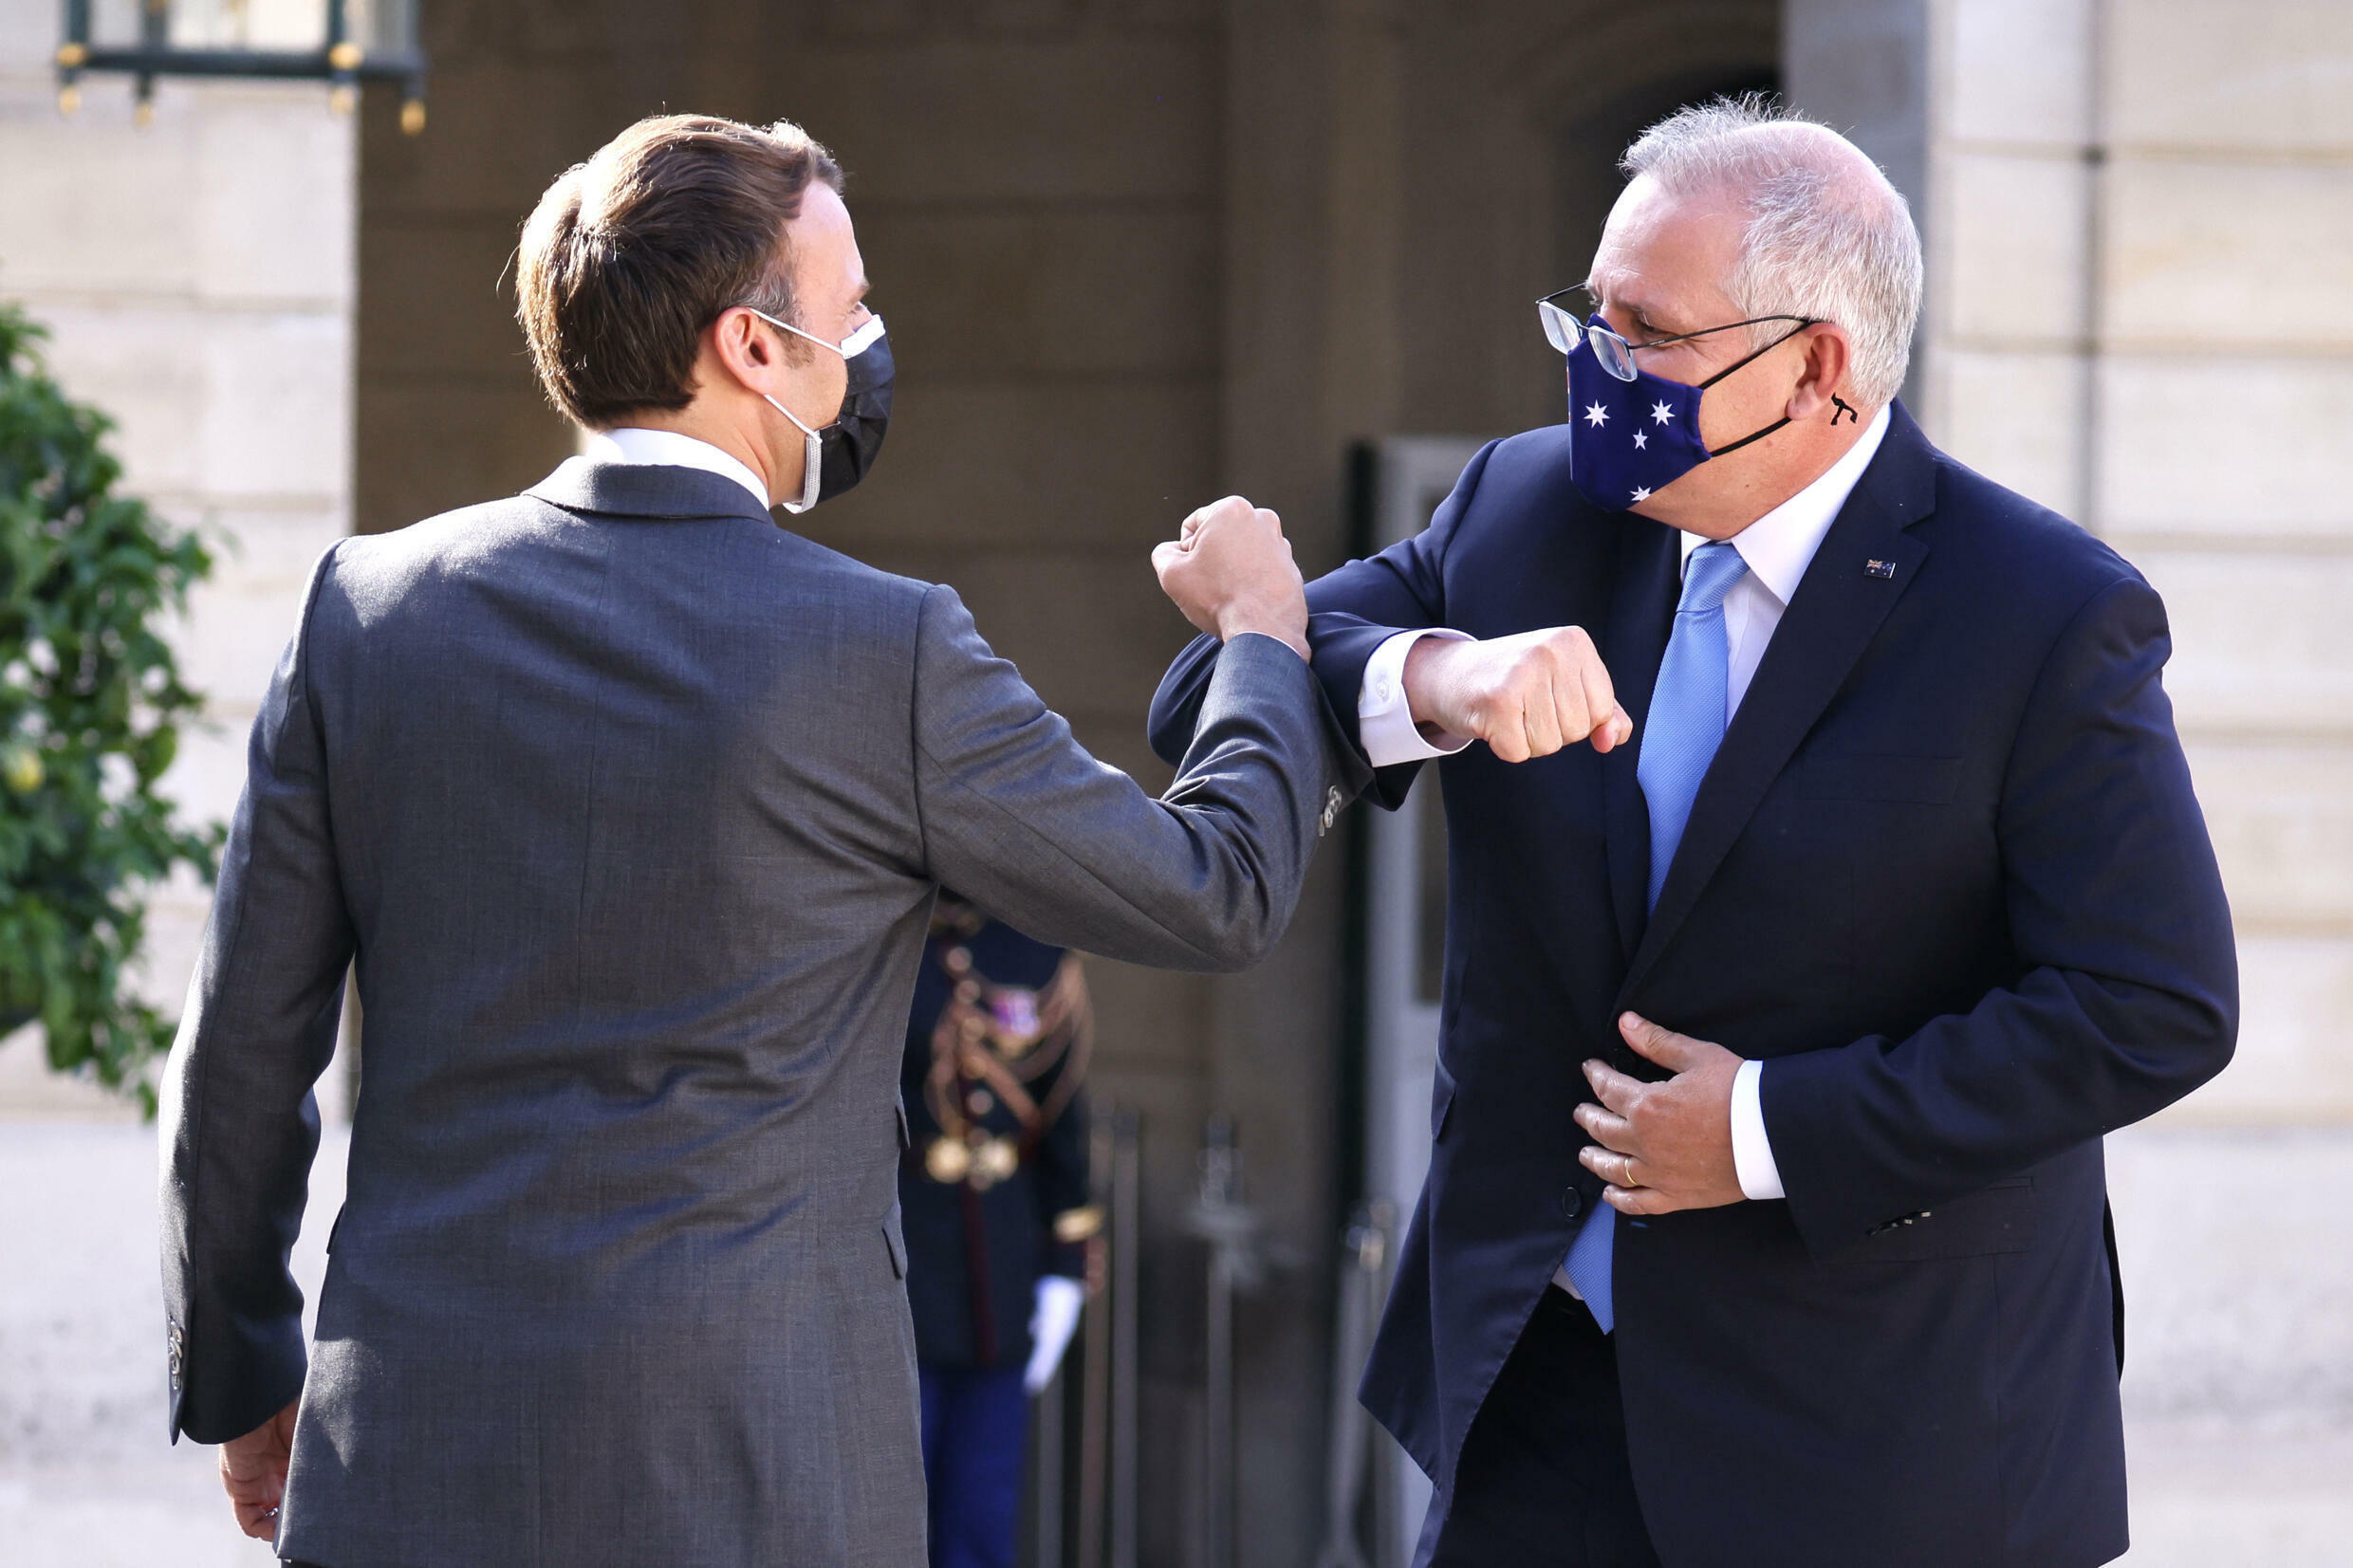 French President Emmanuel Macron greets Australia's Prime Minister Scott Morrison at the Elysee Palace in Paris on June 15, 2021